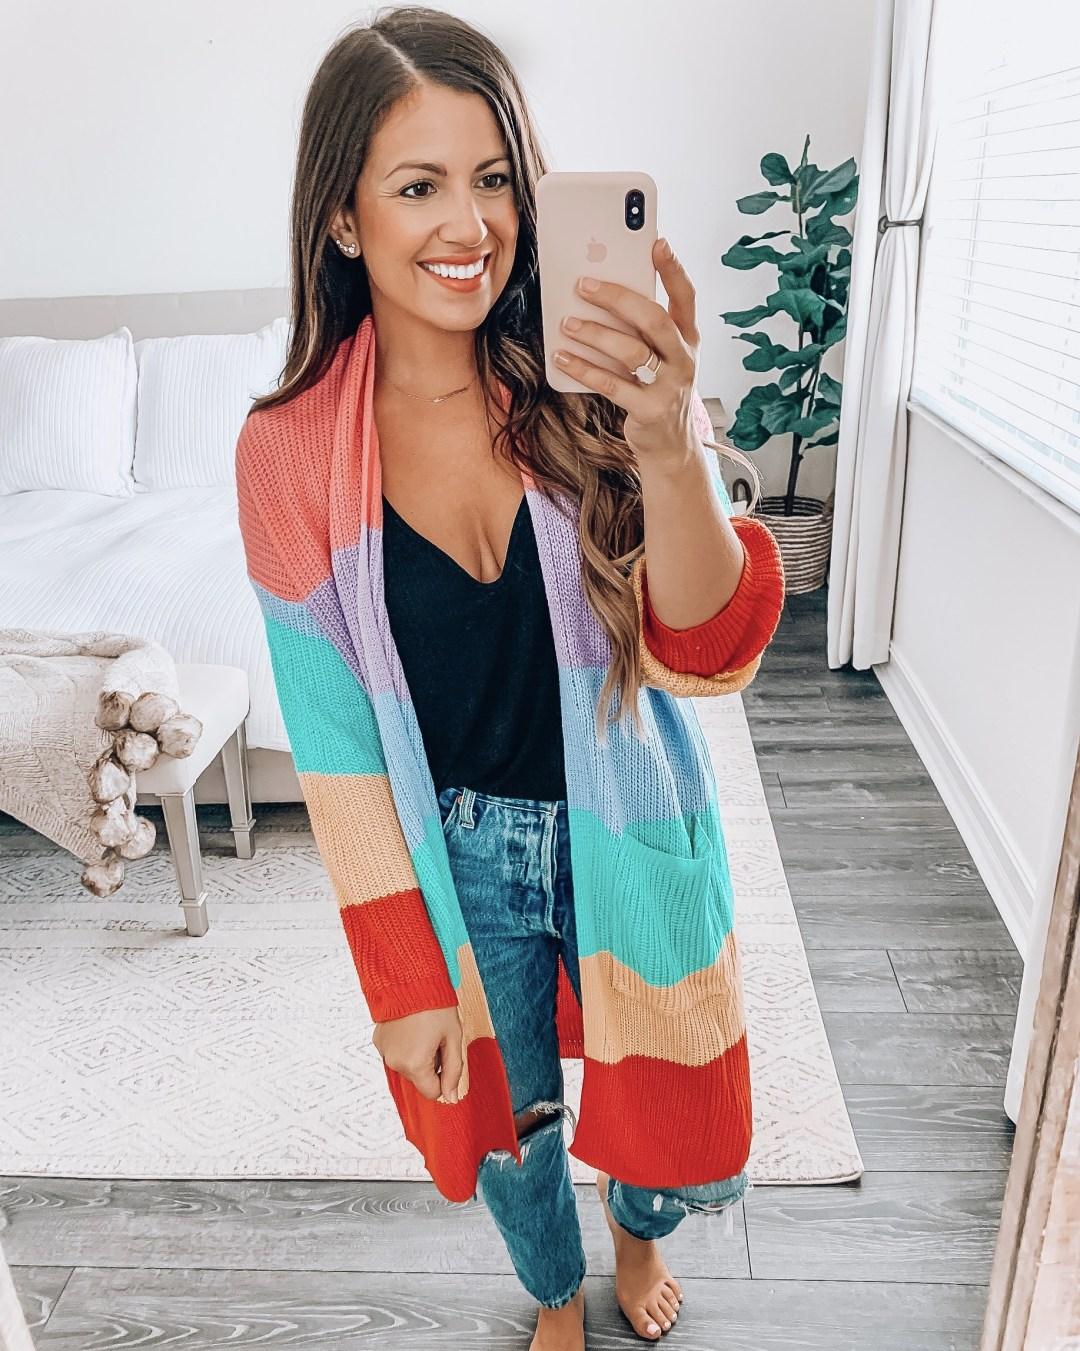 Amazon Fashion rainbow cardigan, Jaime Cittadino Florida Fashion Lifestyle Blogger